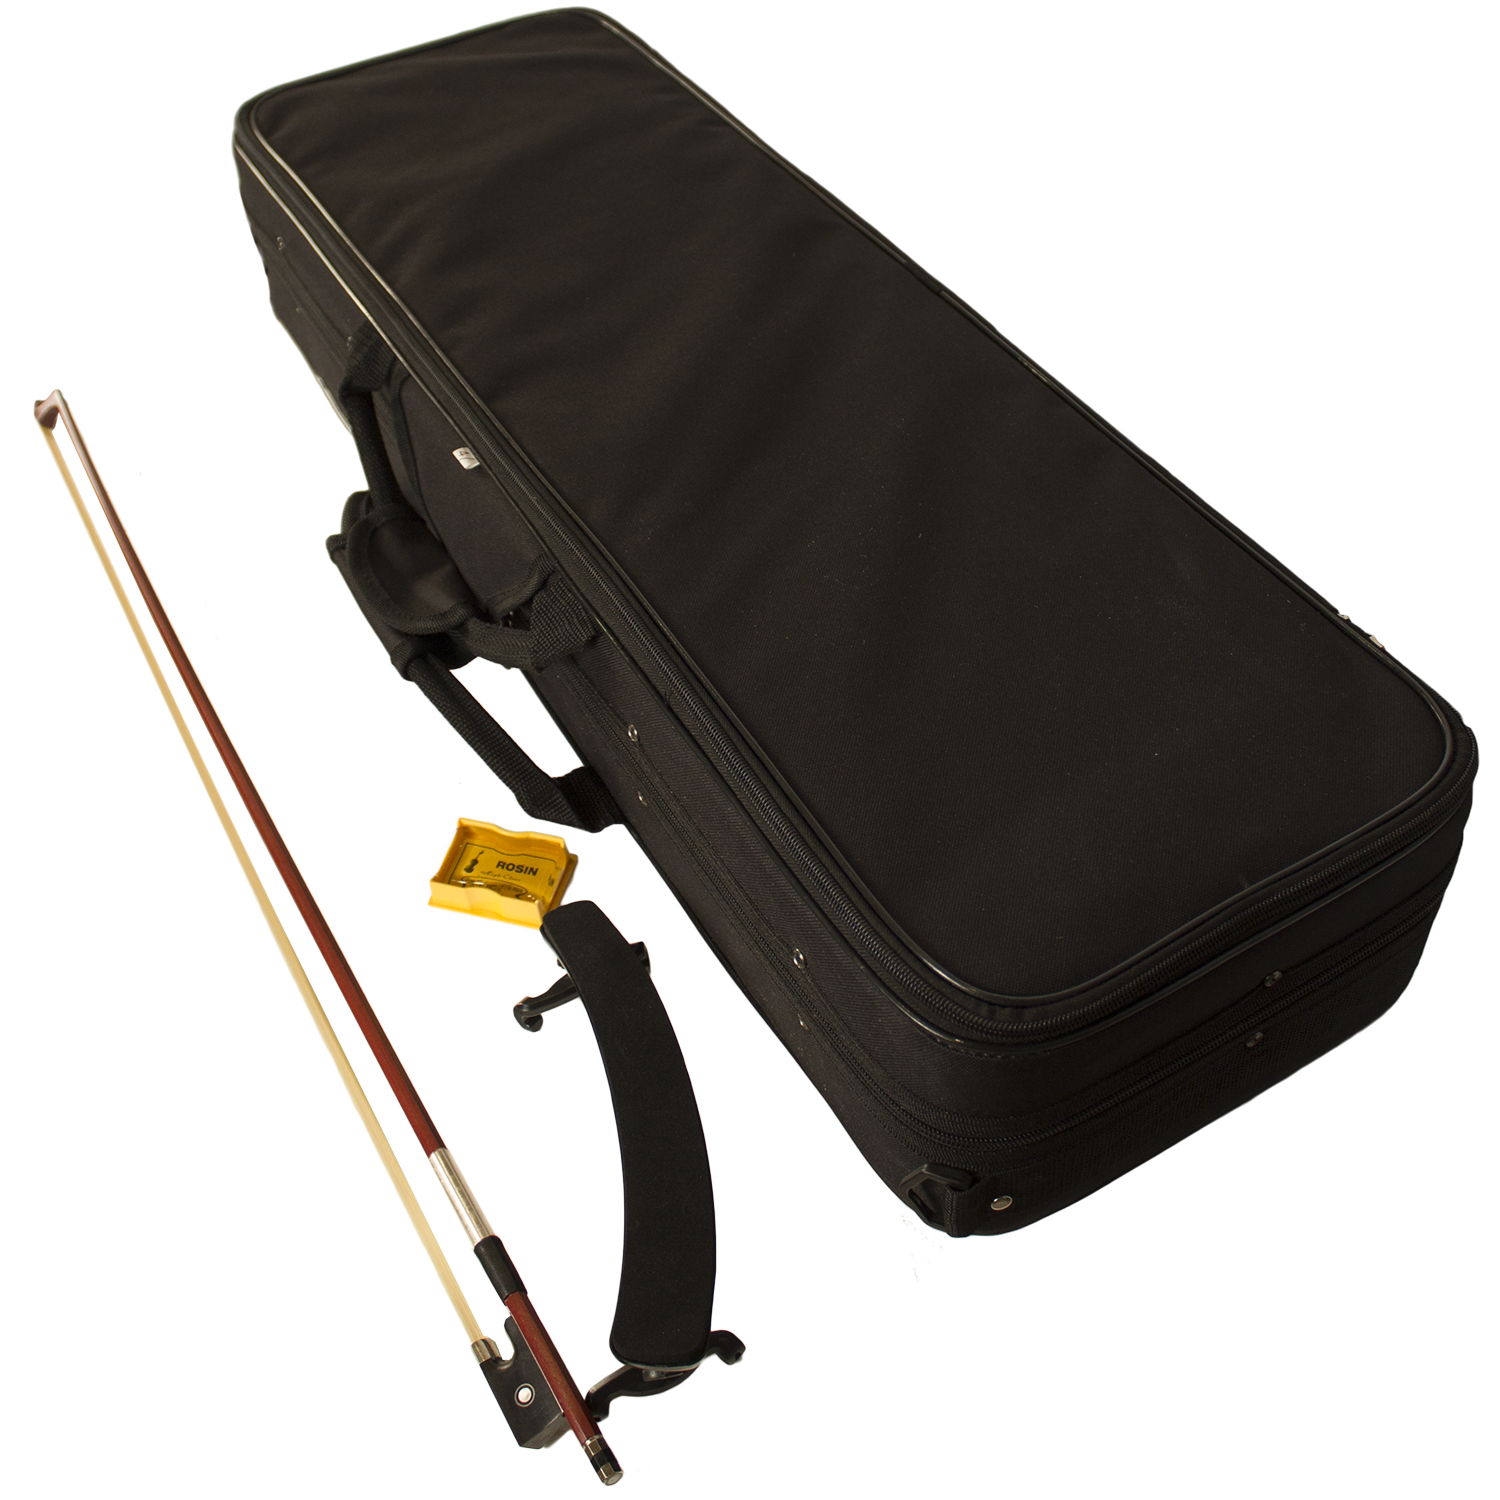 ST-VSSFLAME Case & Accessories